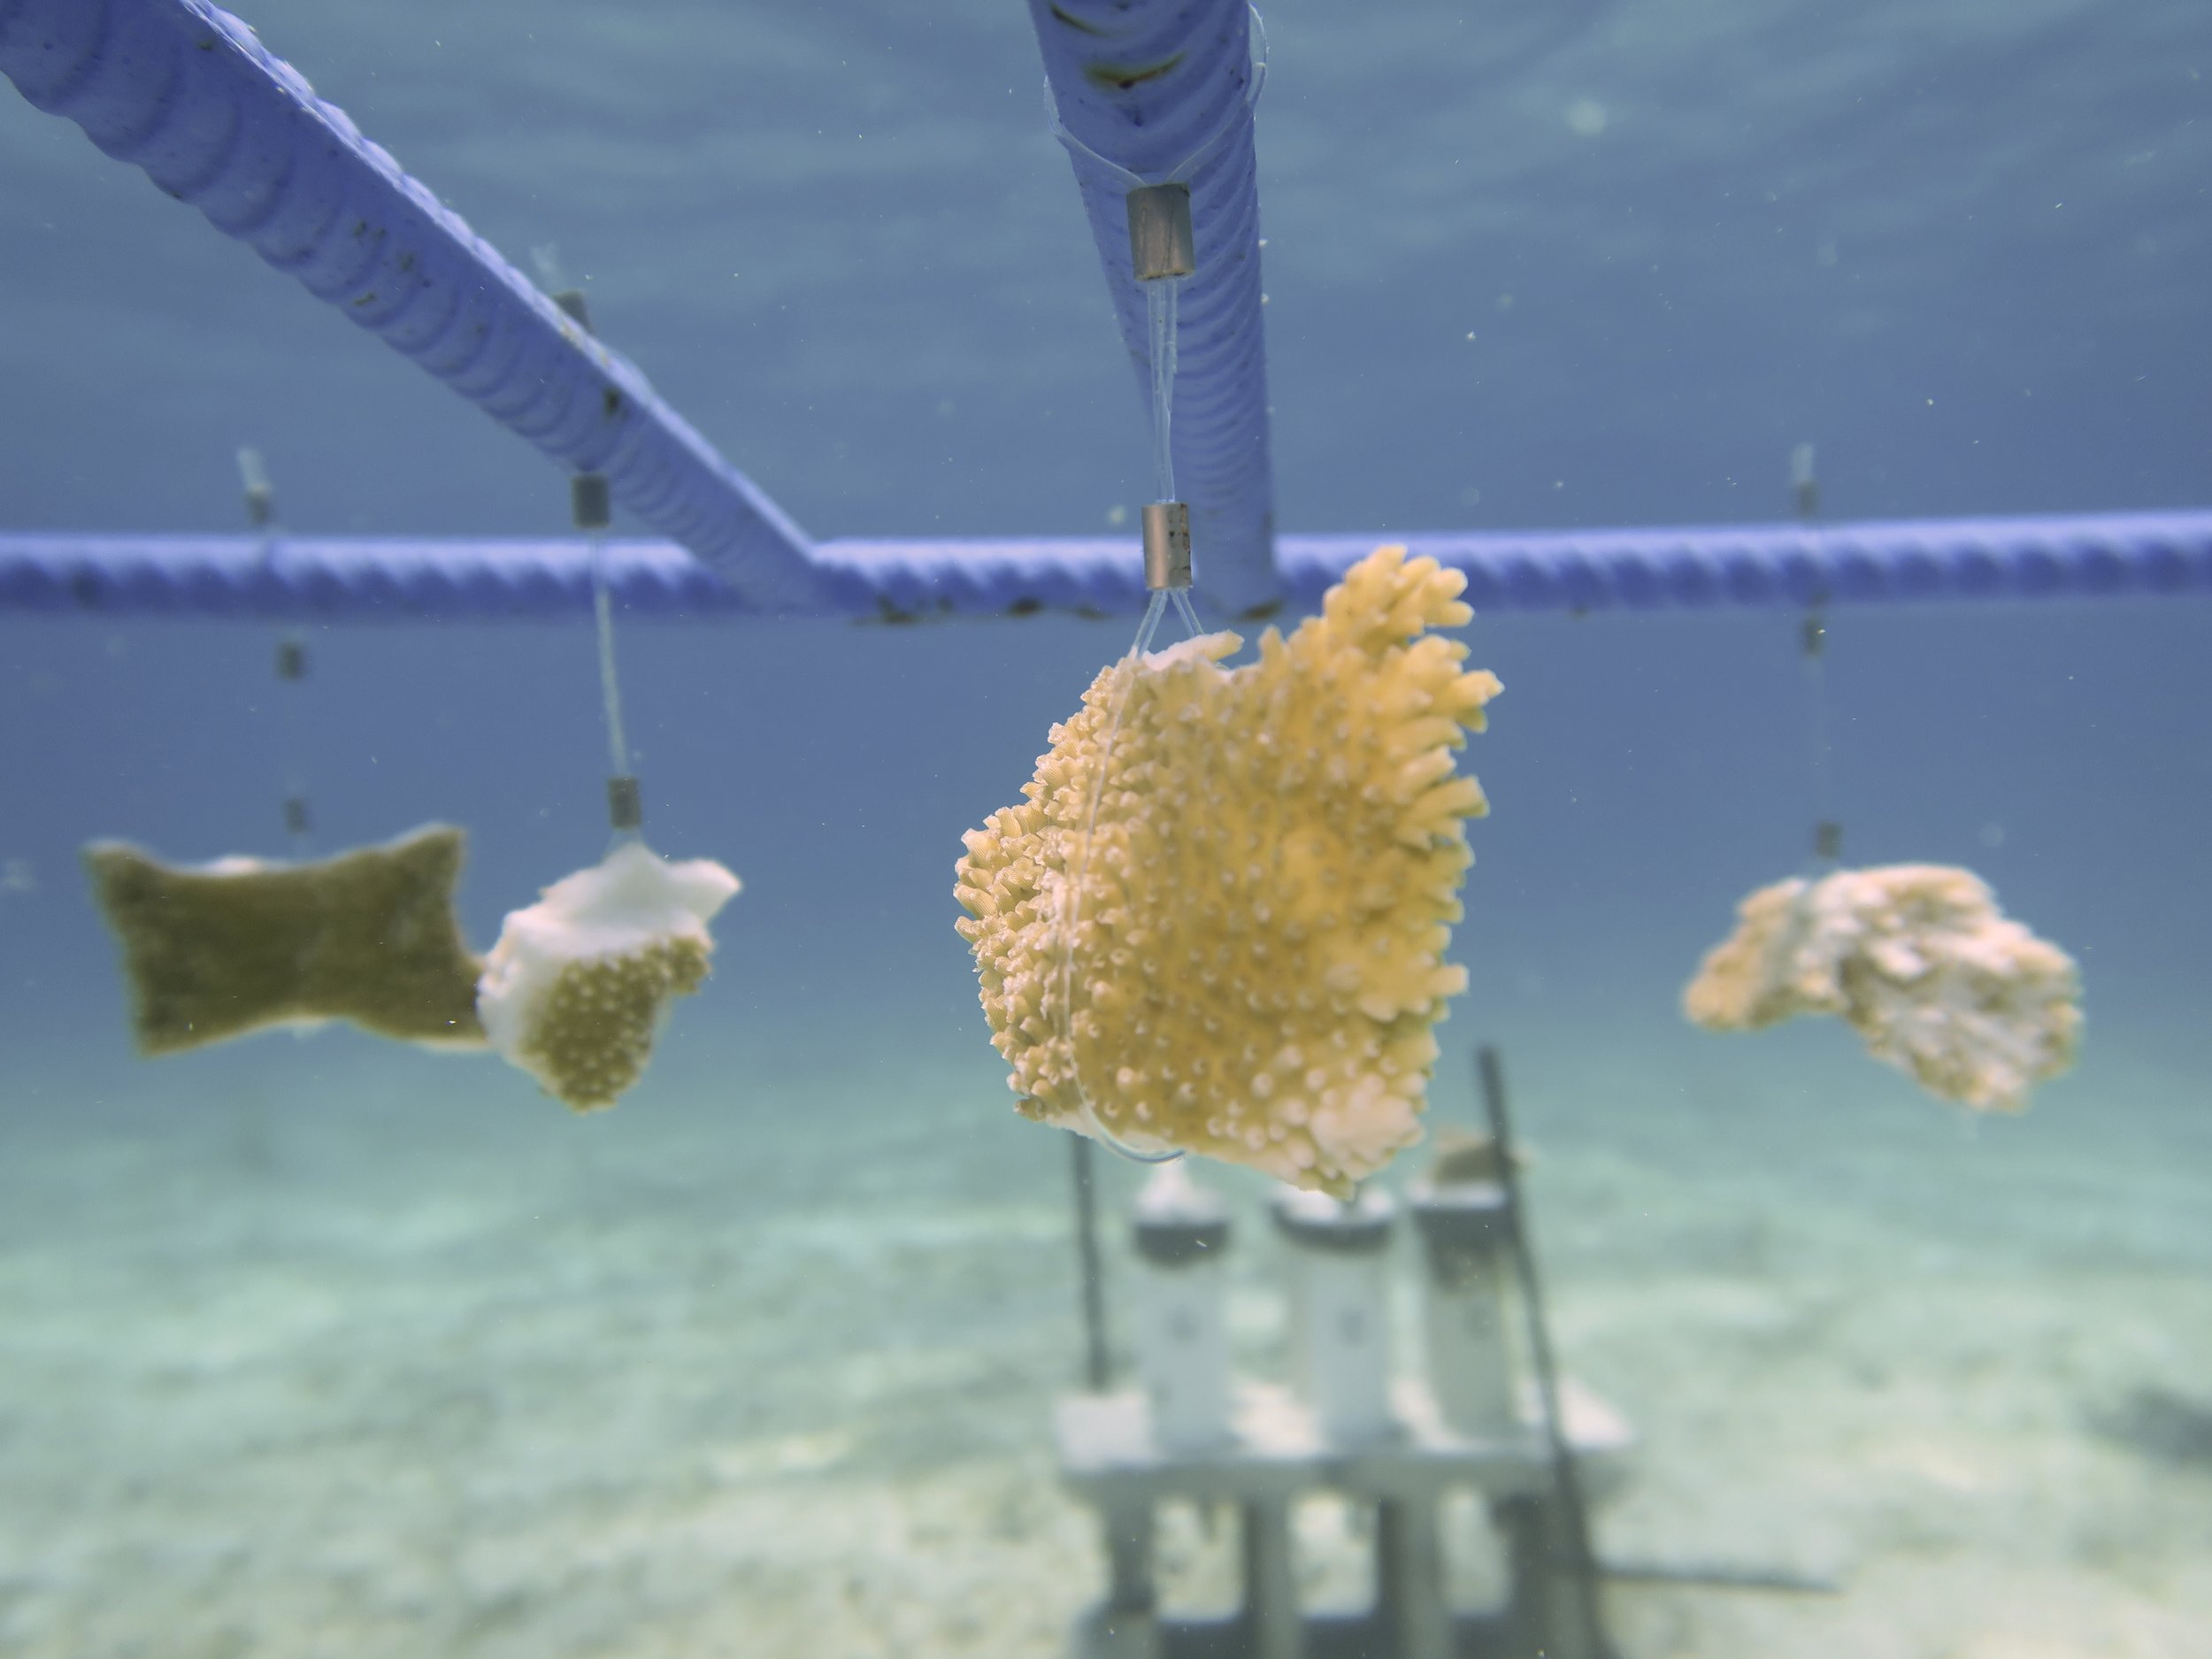 Photo 2: Elkhorn coral fragments hang from the rebar structure at the new shallow water nursery site.